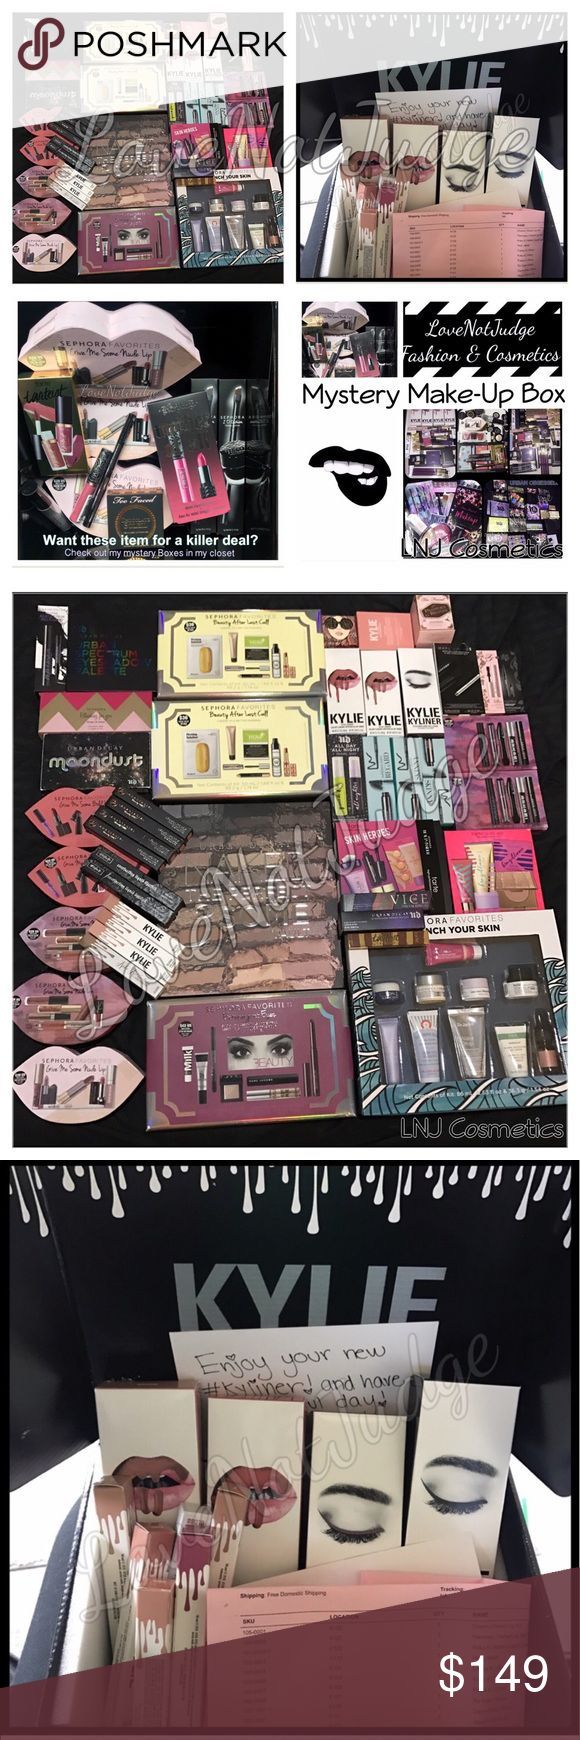 NEW! High end Only mystery makeup box 200$ value! Makeup Mystery box! 200$+ plus Value all new! Multiple values available- I have way more makeup than what is shown. Fully customized to you: message me after purchase and give me detailed info on fave brands and products- ) Main brands it could have and I carry: Urban Decay, Too Faced, MAC, Benefit, Kylie, Sephora. LNJ BEAUTY, bare minerals, Lorac, givenchy and sooo much more!  I GET new products bi weekly! Read my box reviews for info or ask…